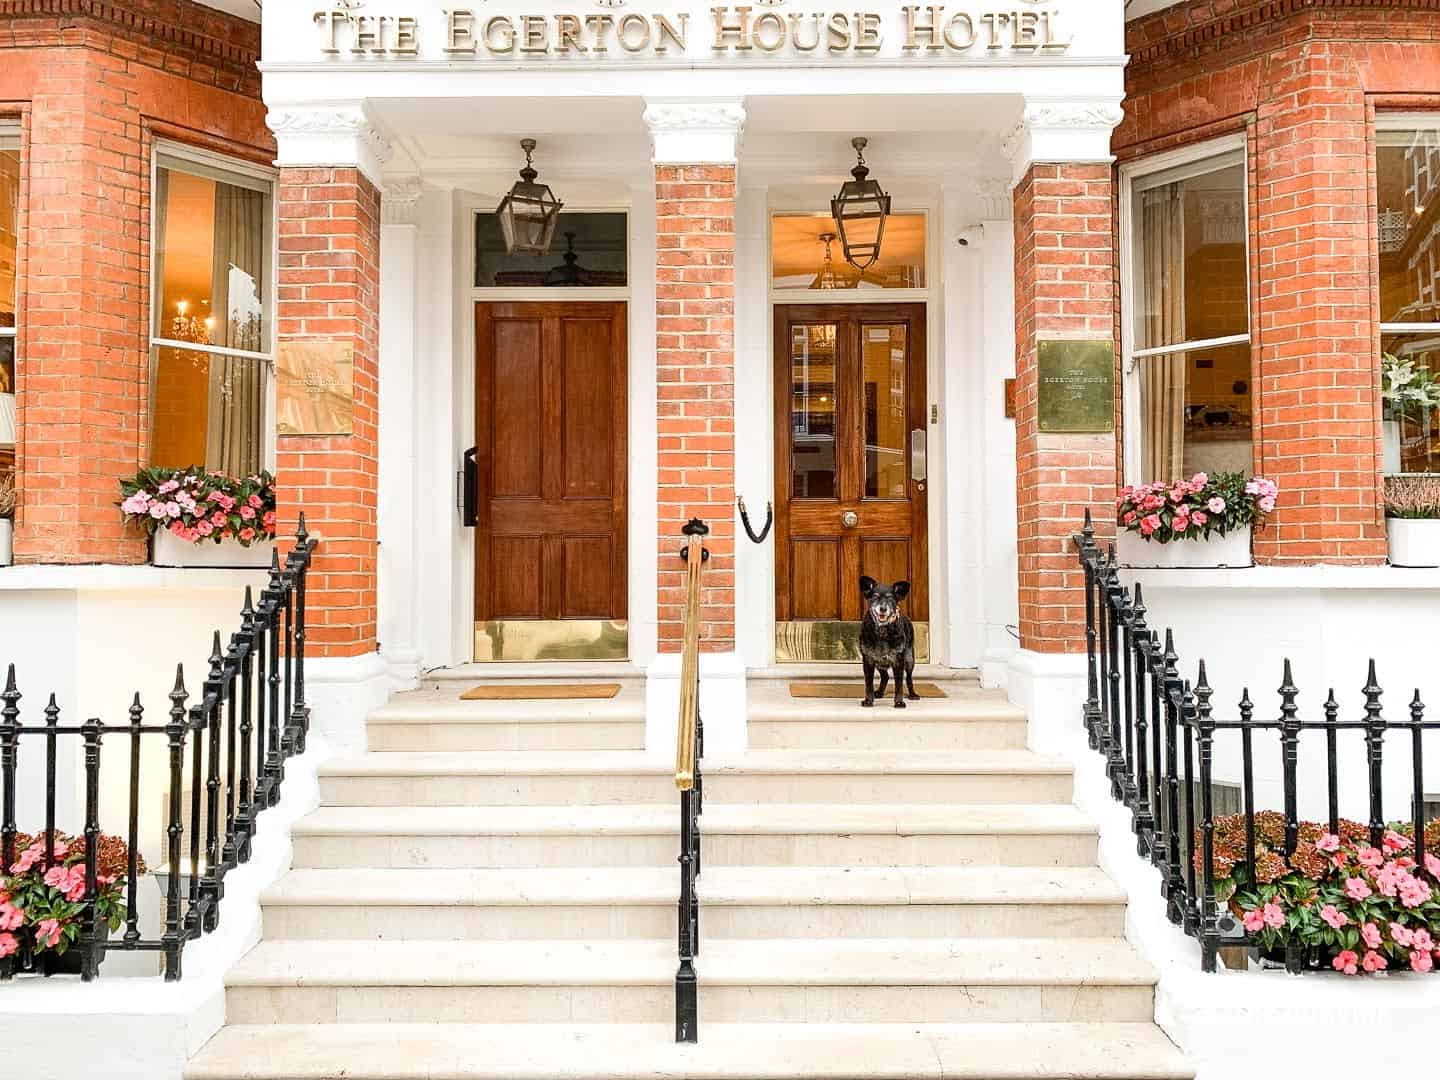 Dog Afternoon Tea At The Egerton House Hotel 24